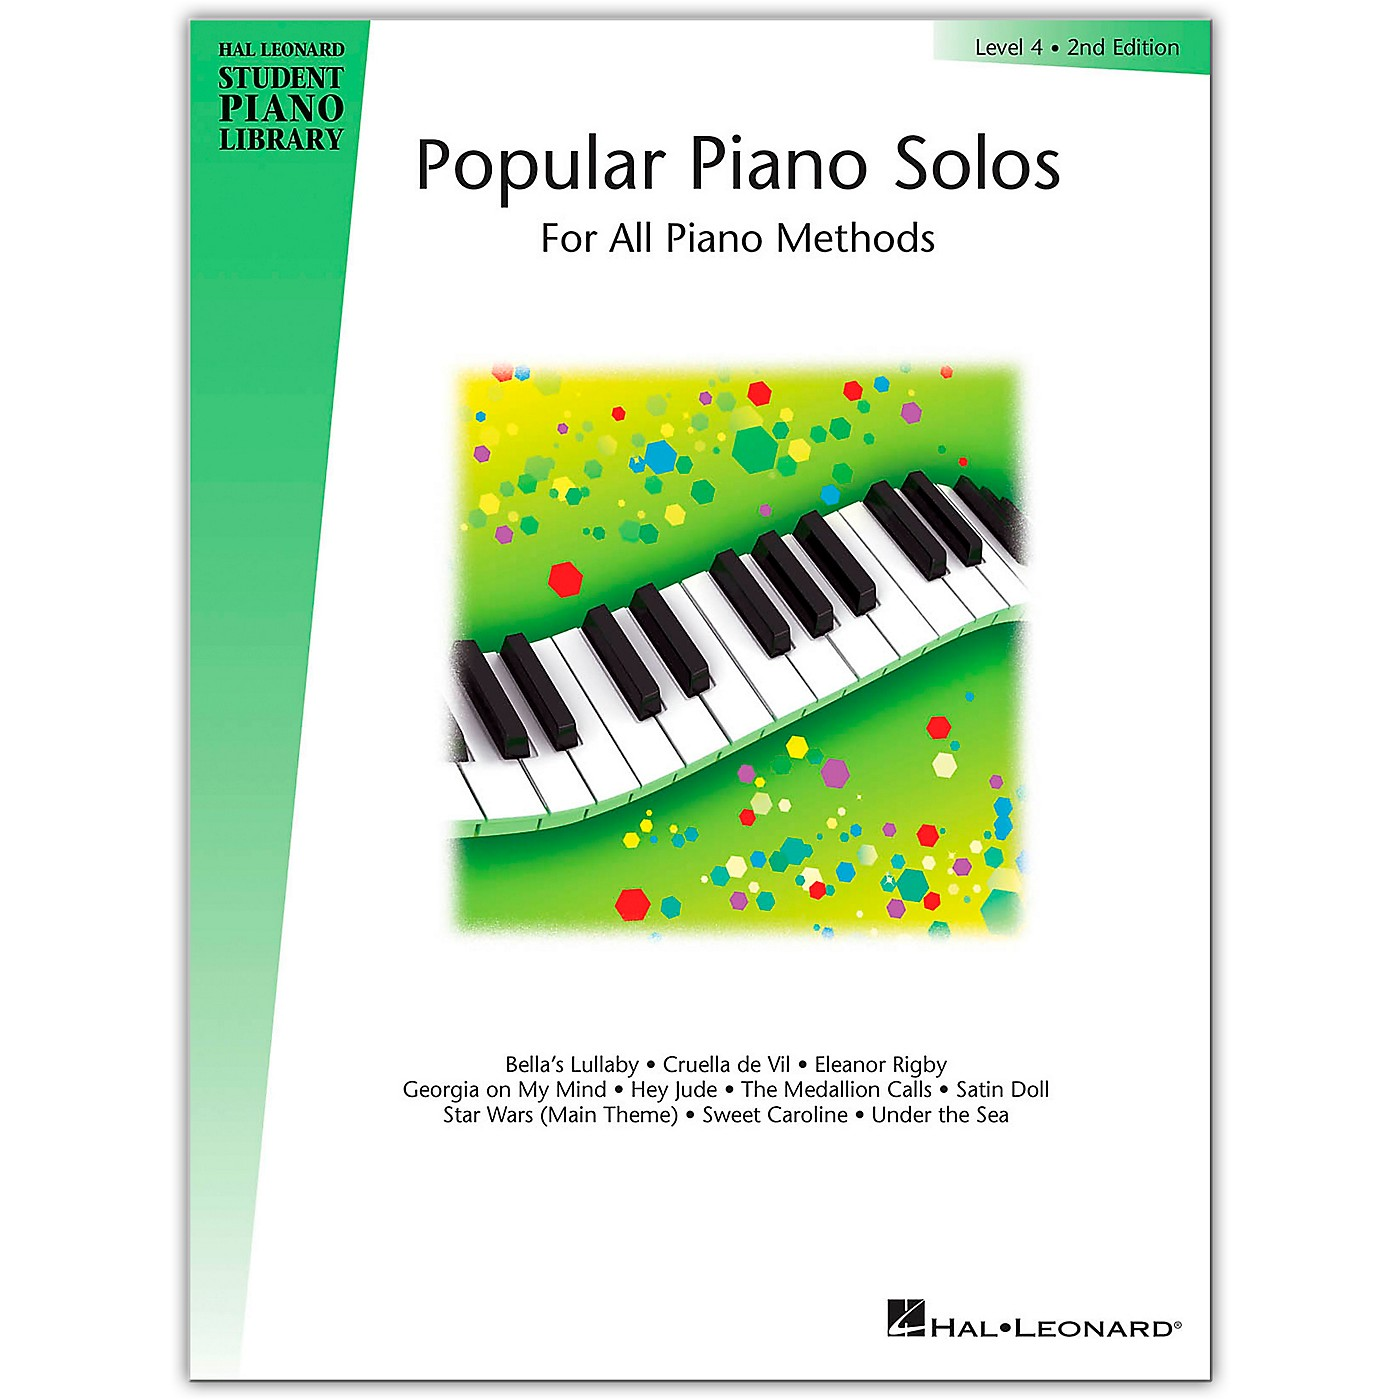 Hal Leonard Popular Piano Solos For All Piano Methods Level 4, 2nd Edition thumbnail